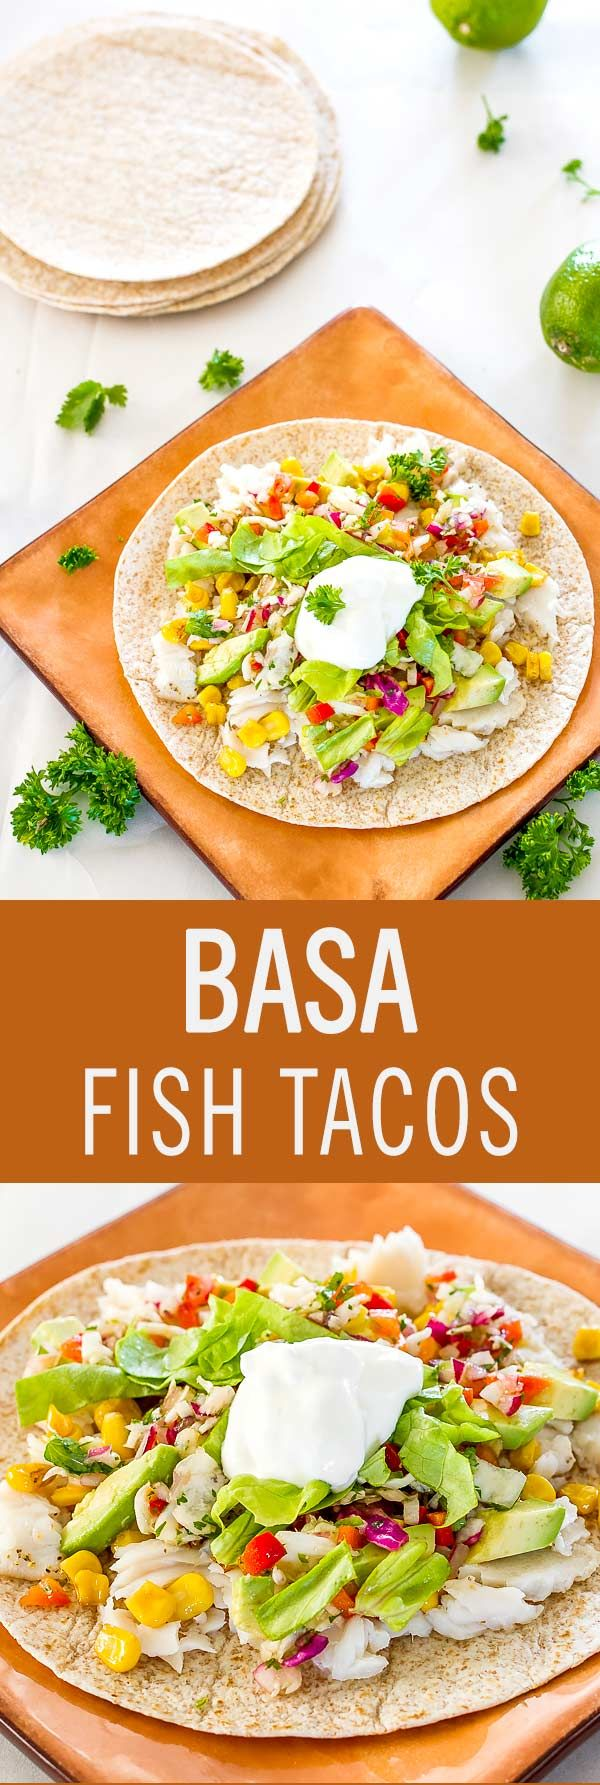 These refreshing basa fish tacos make for a quick and healthy lunch, featuring a delicious combination of seafood, avocado and chunky salsa.